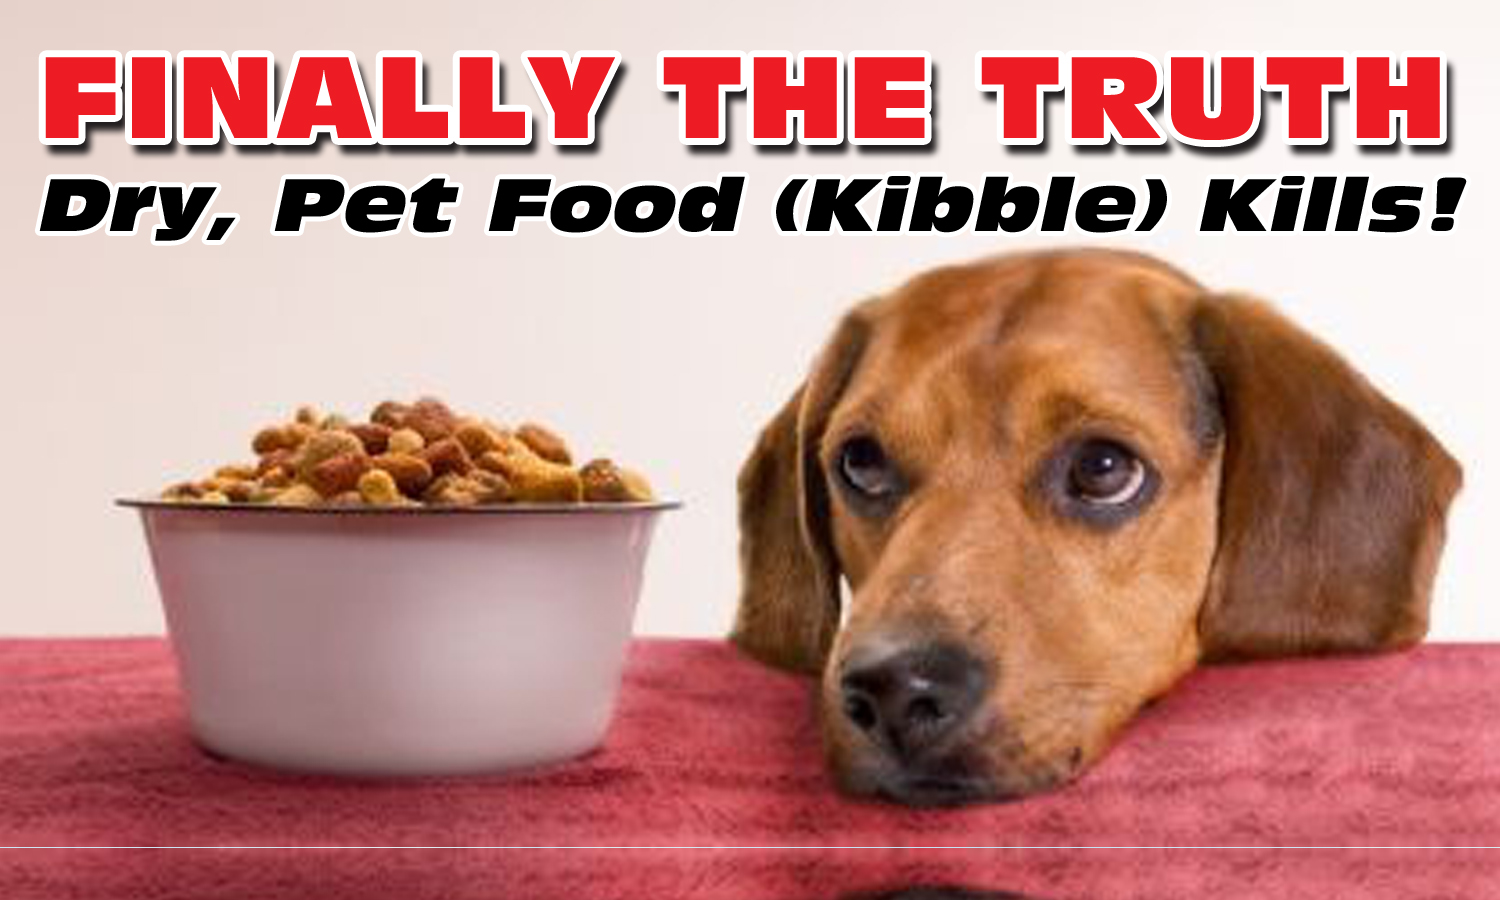 Dry Kibble Kills! Click For More Information And To Purchase